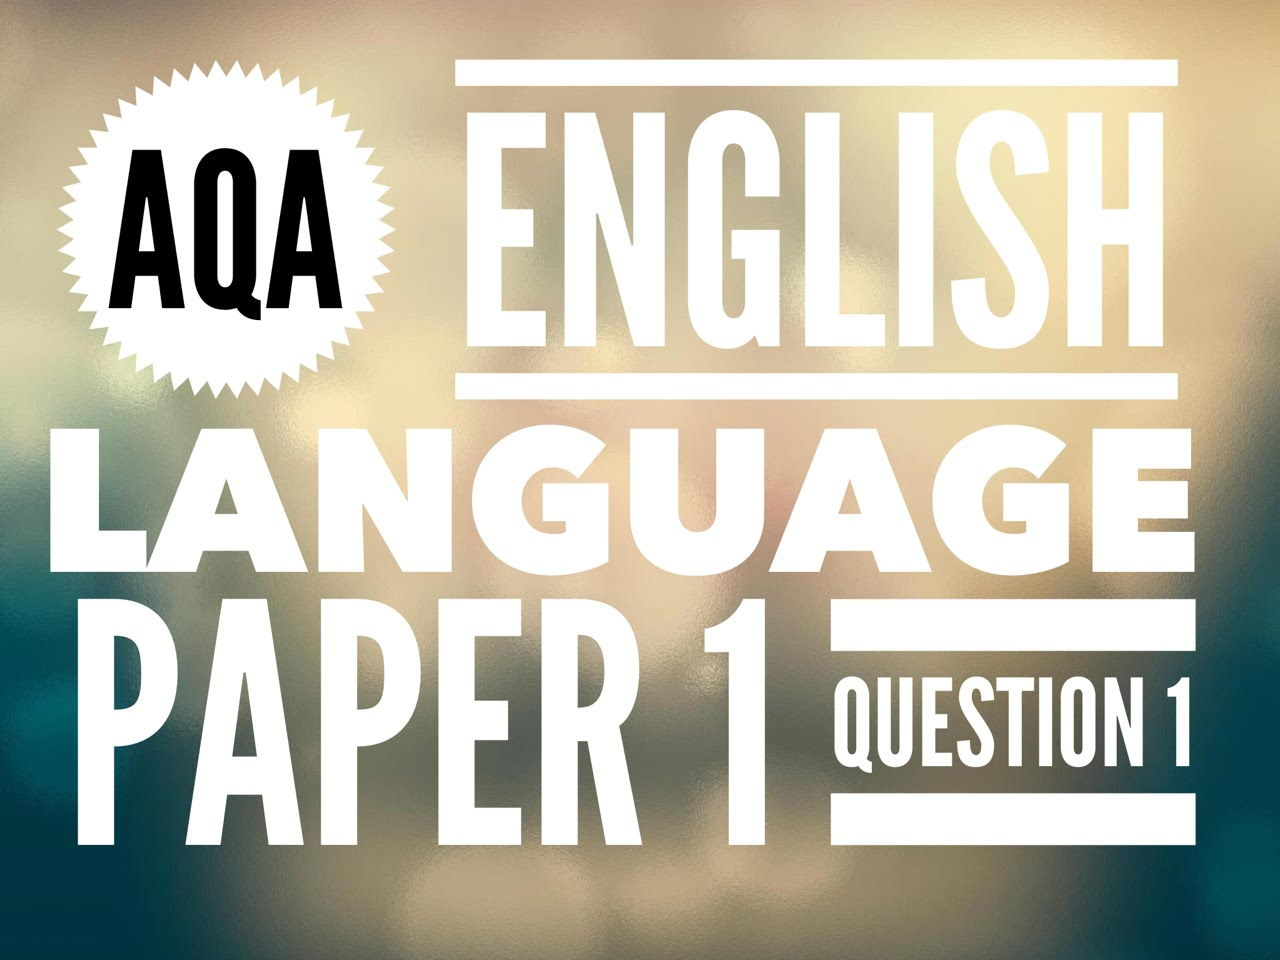 English paper help a language 2017